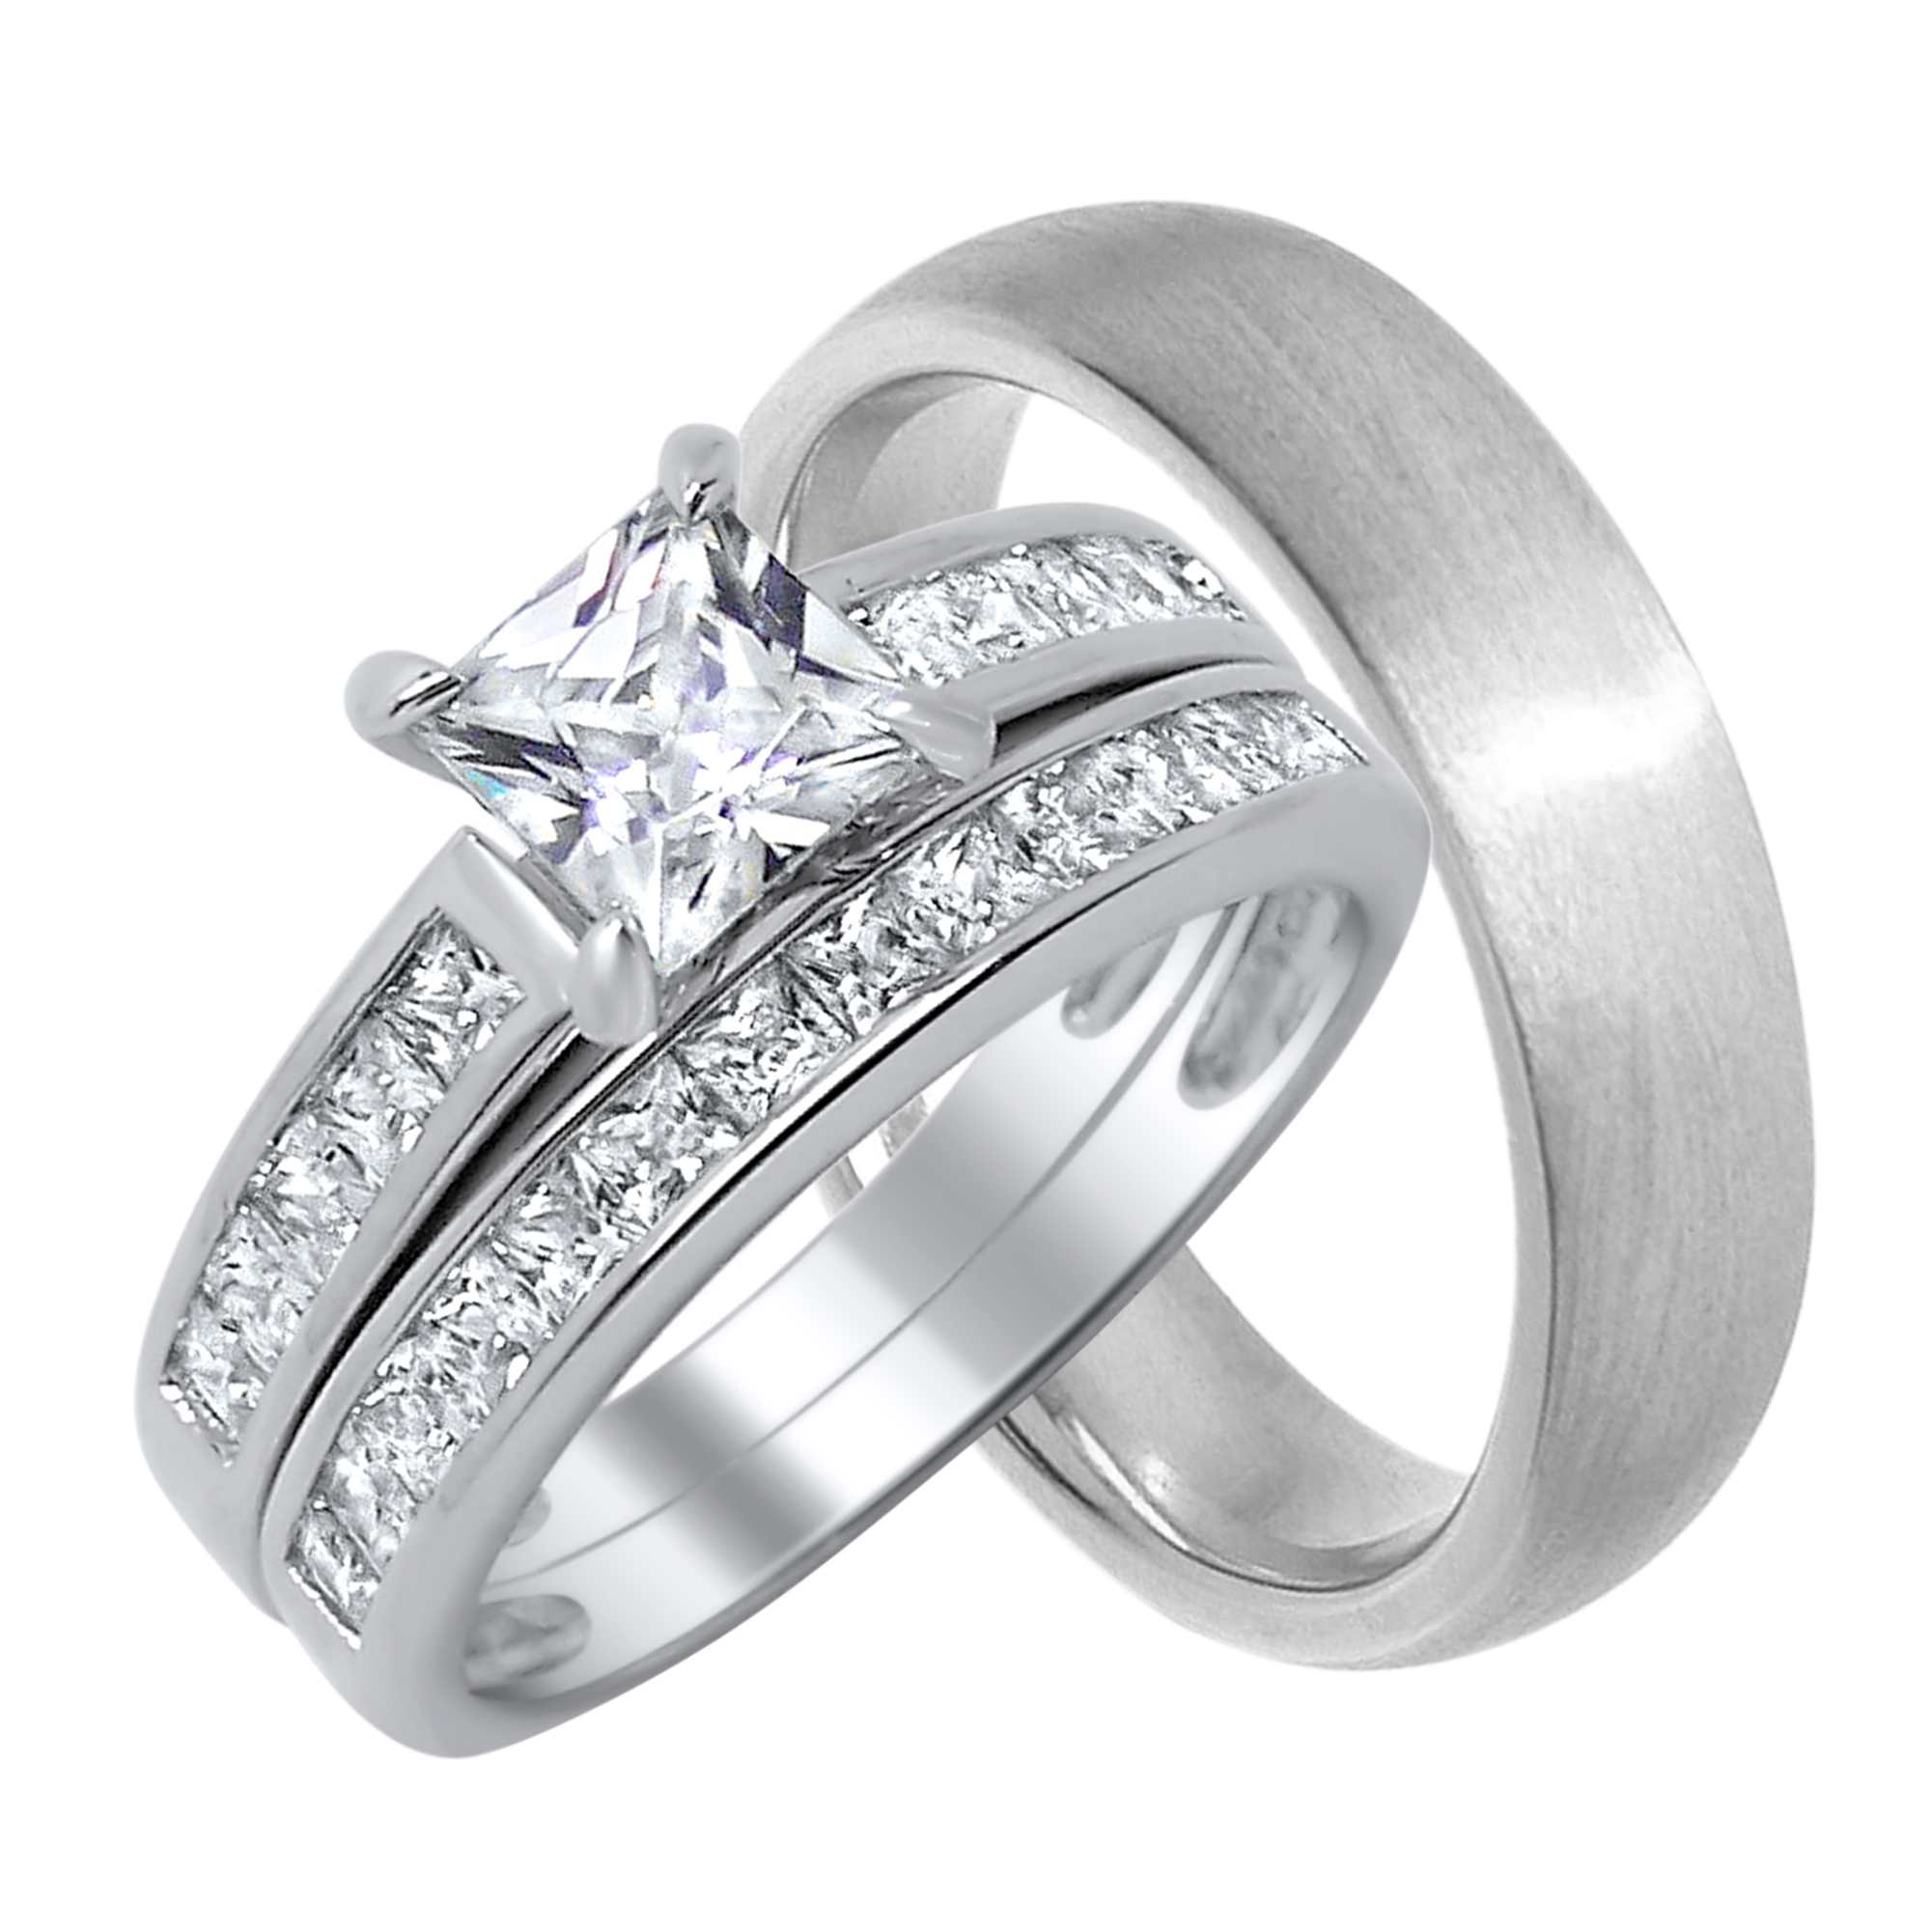 Matching Weding Rings For Him And Her 016 - Matching Weding Rings For Him And Her